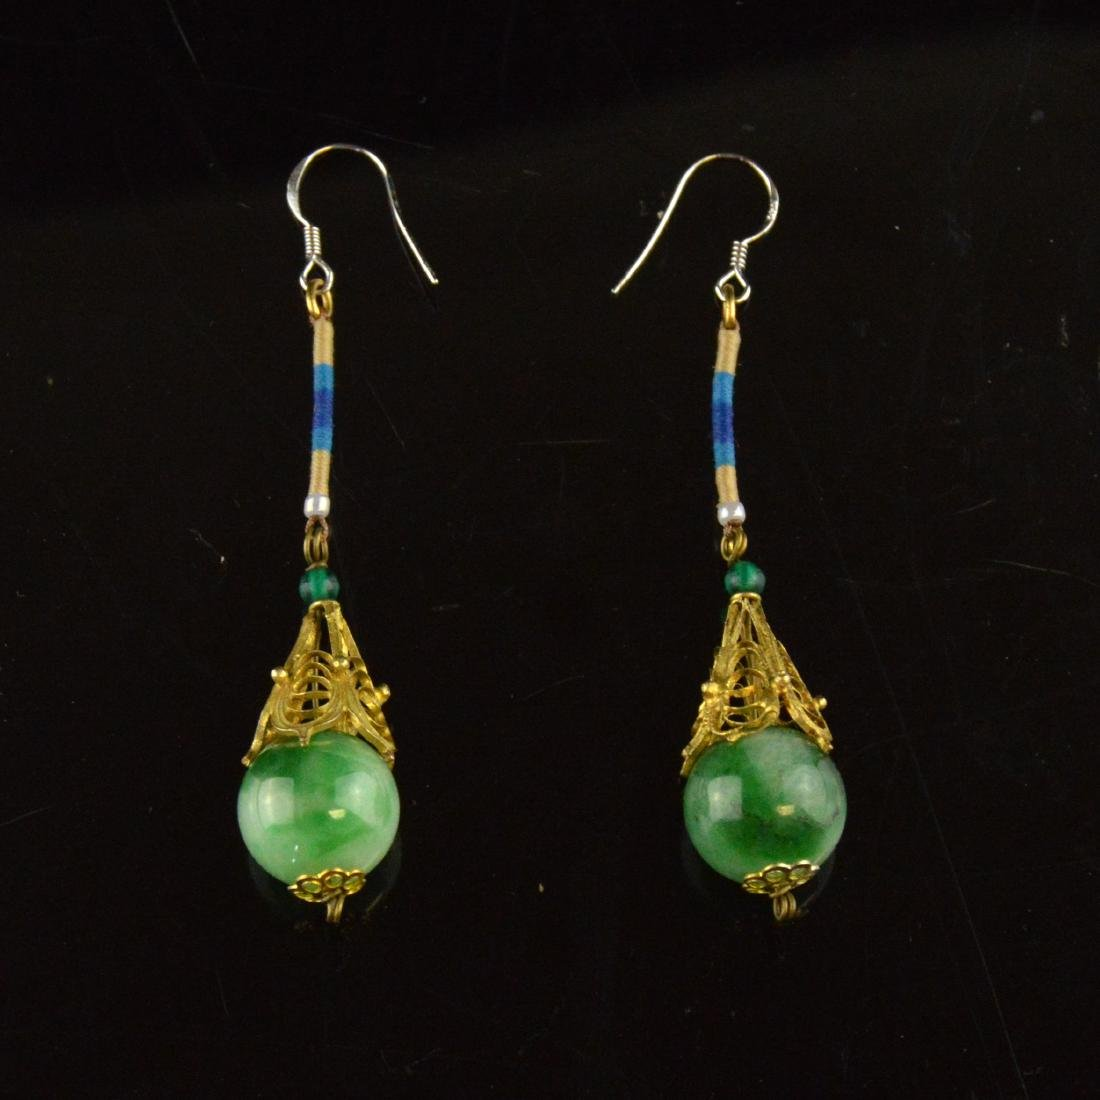 Old Jadeite Earring Pair